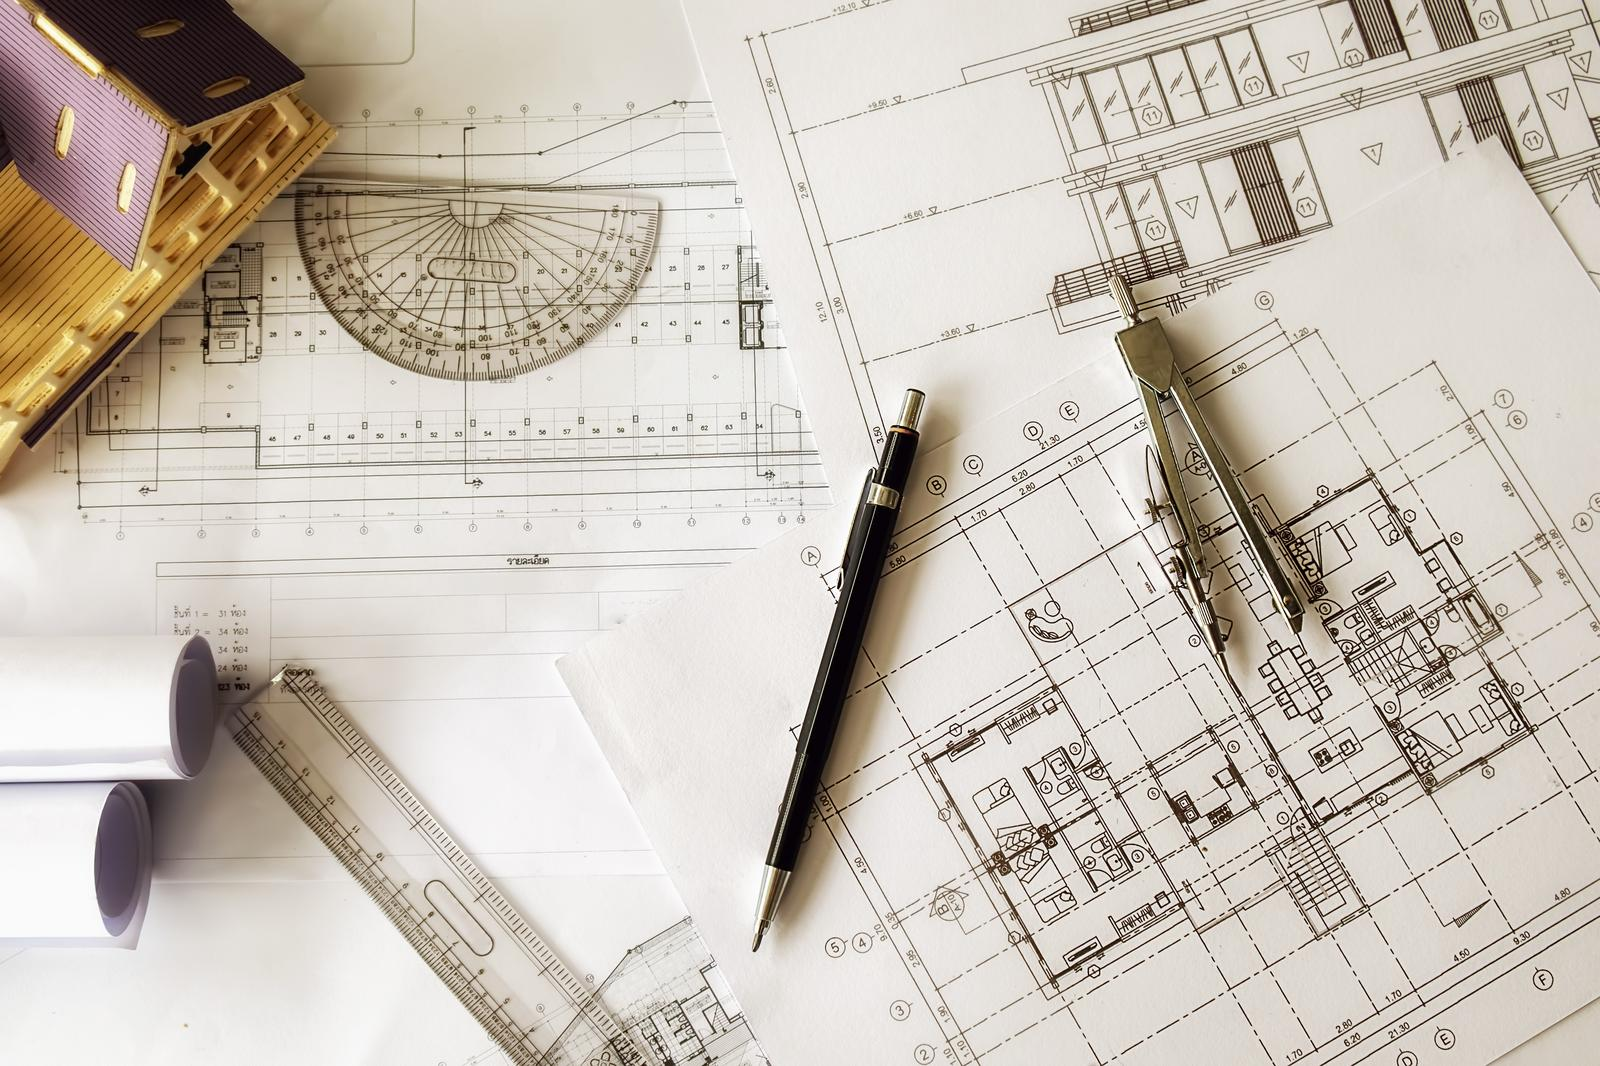 Development of building projects in Narva